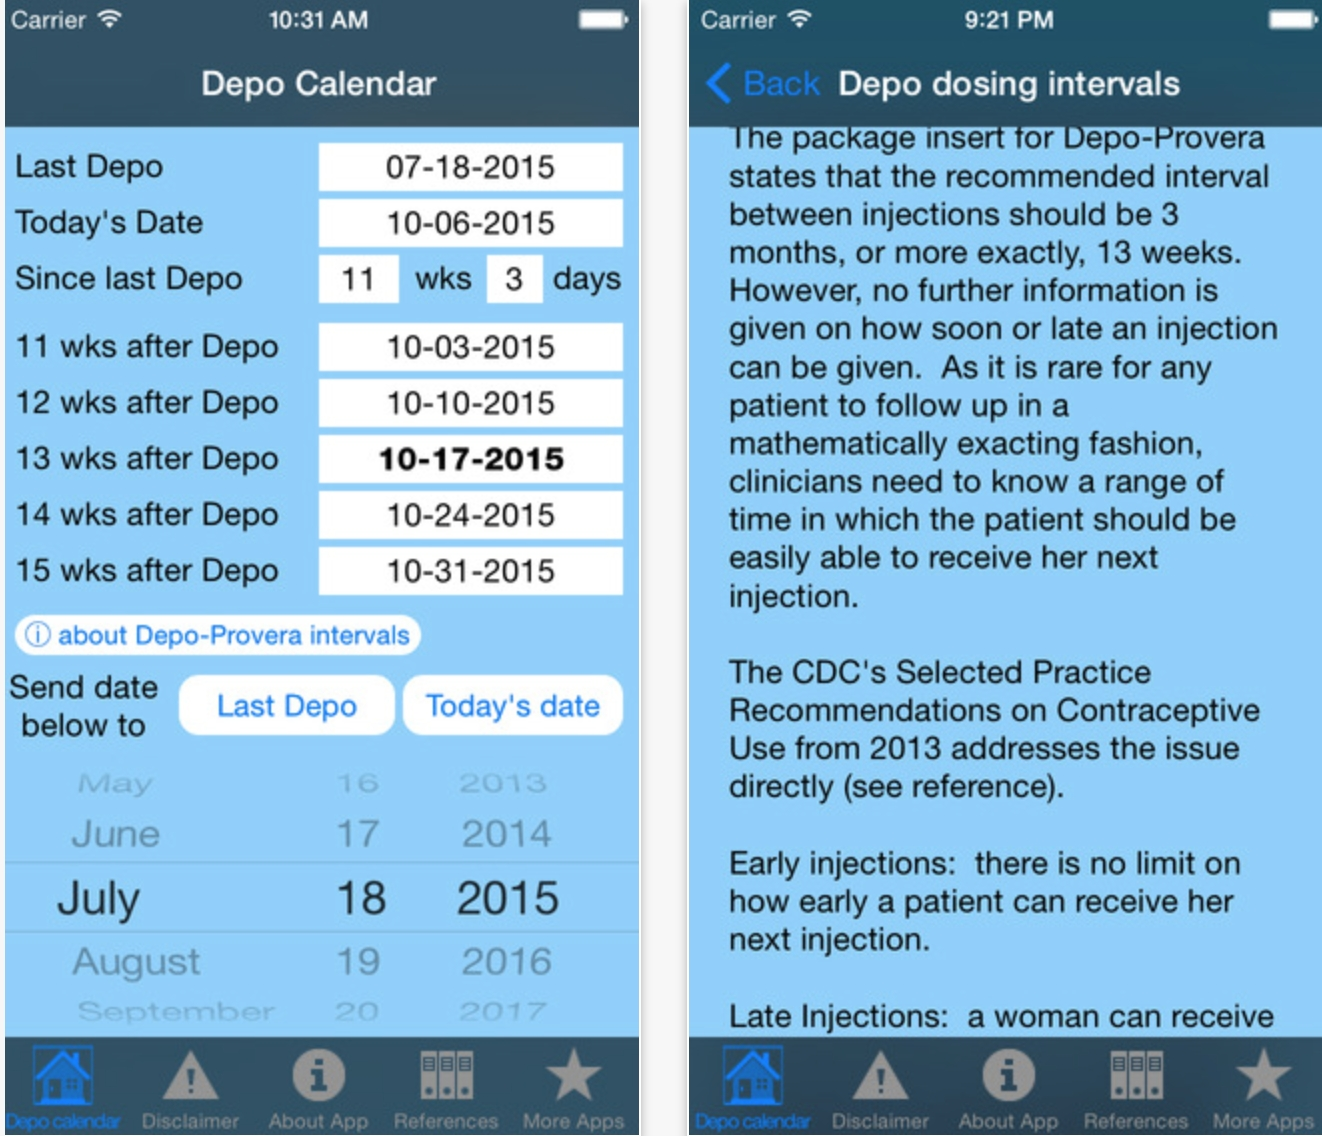 Collect Current Depo Calendar